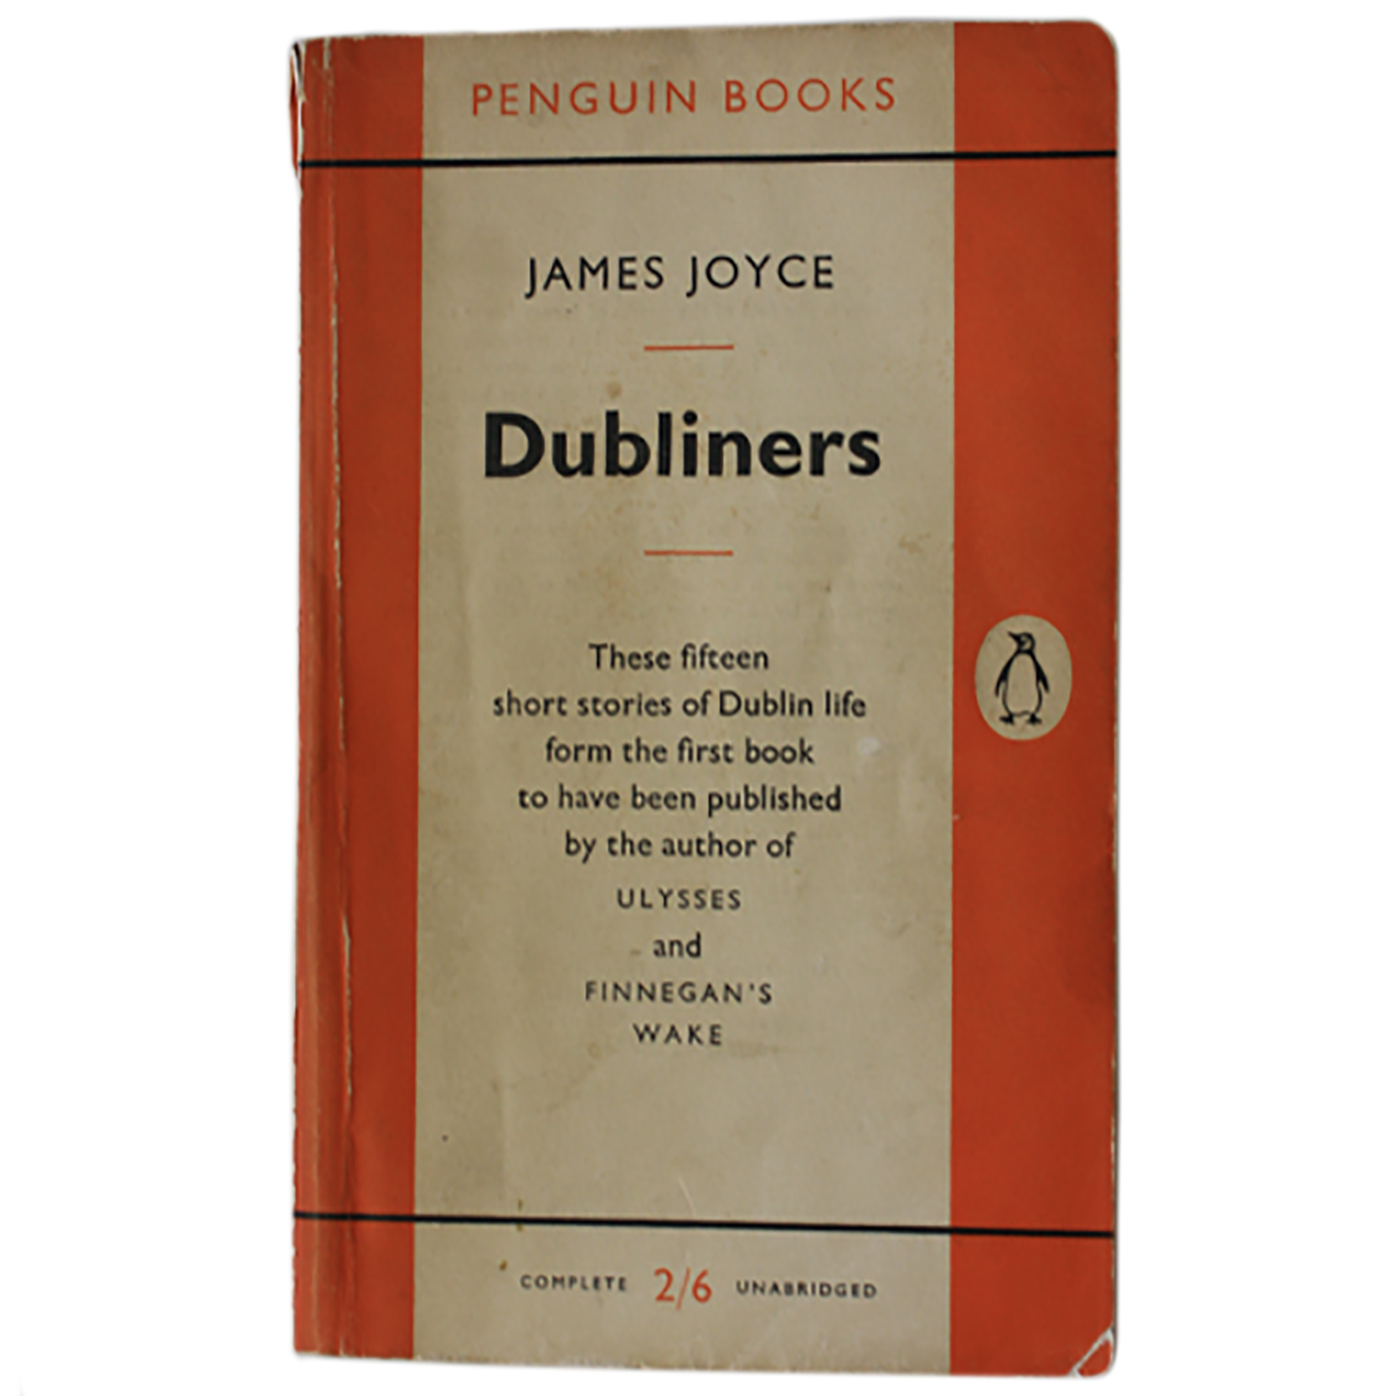 the dead by james joyce essay the dubliners the dead part audiobook by james joyce st george s cathedral perth the dubliners the dead part audiobook by james joyce st george s cathedral